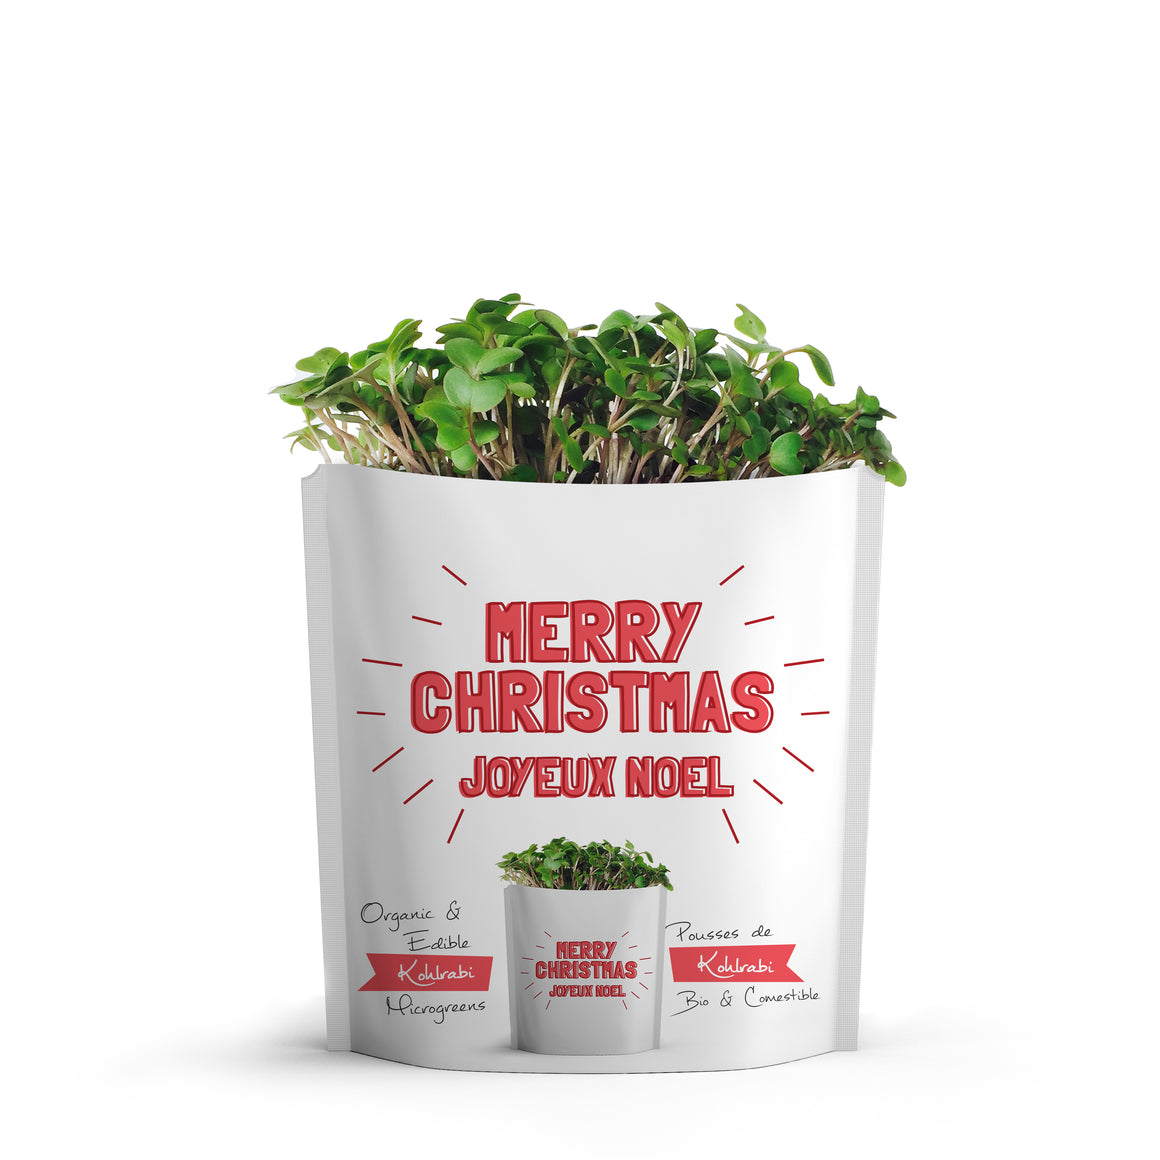 Microgreens Collection | Merry Christmas | Kohlrabi Microgreens - Gift-a-Green